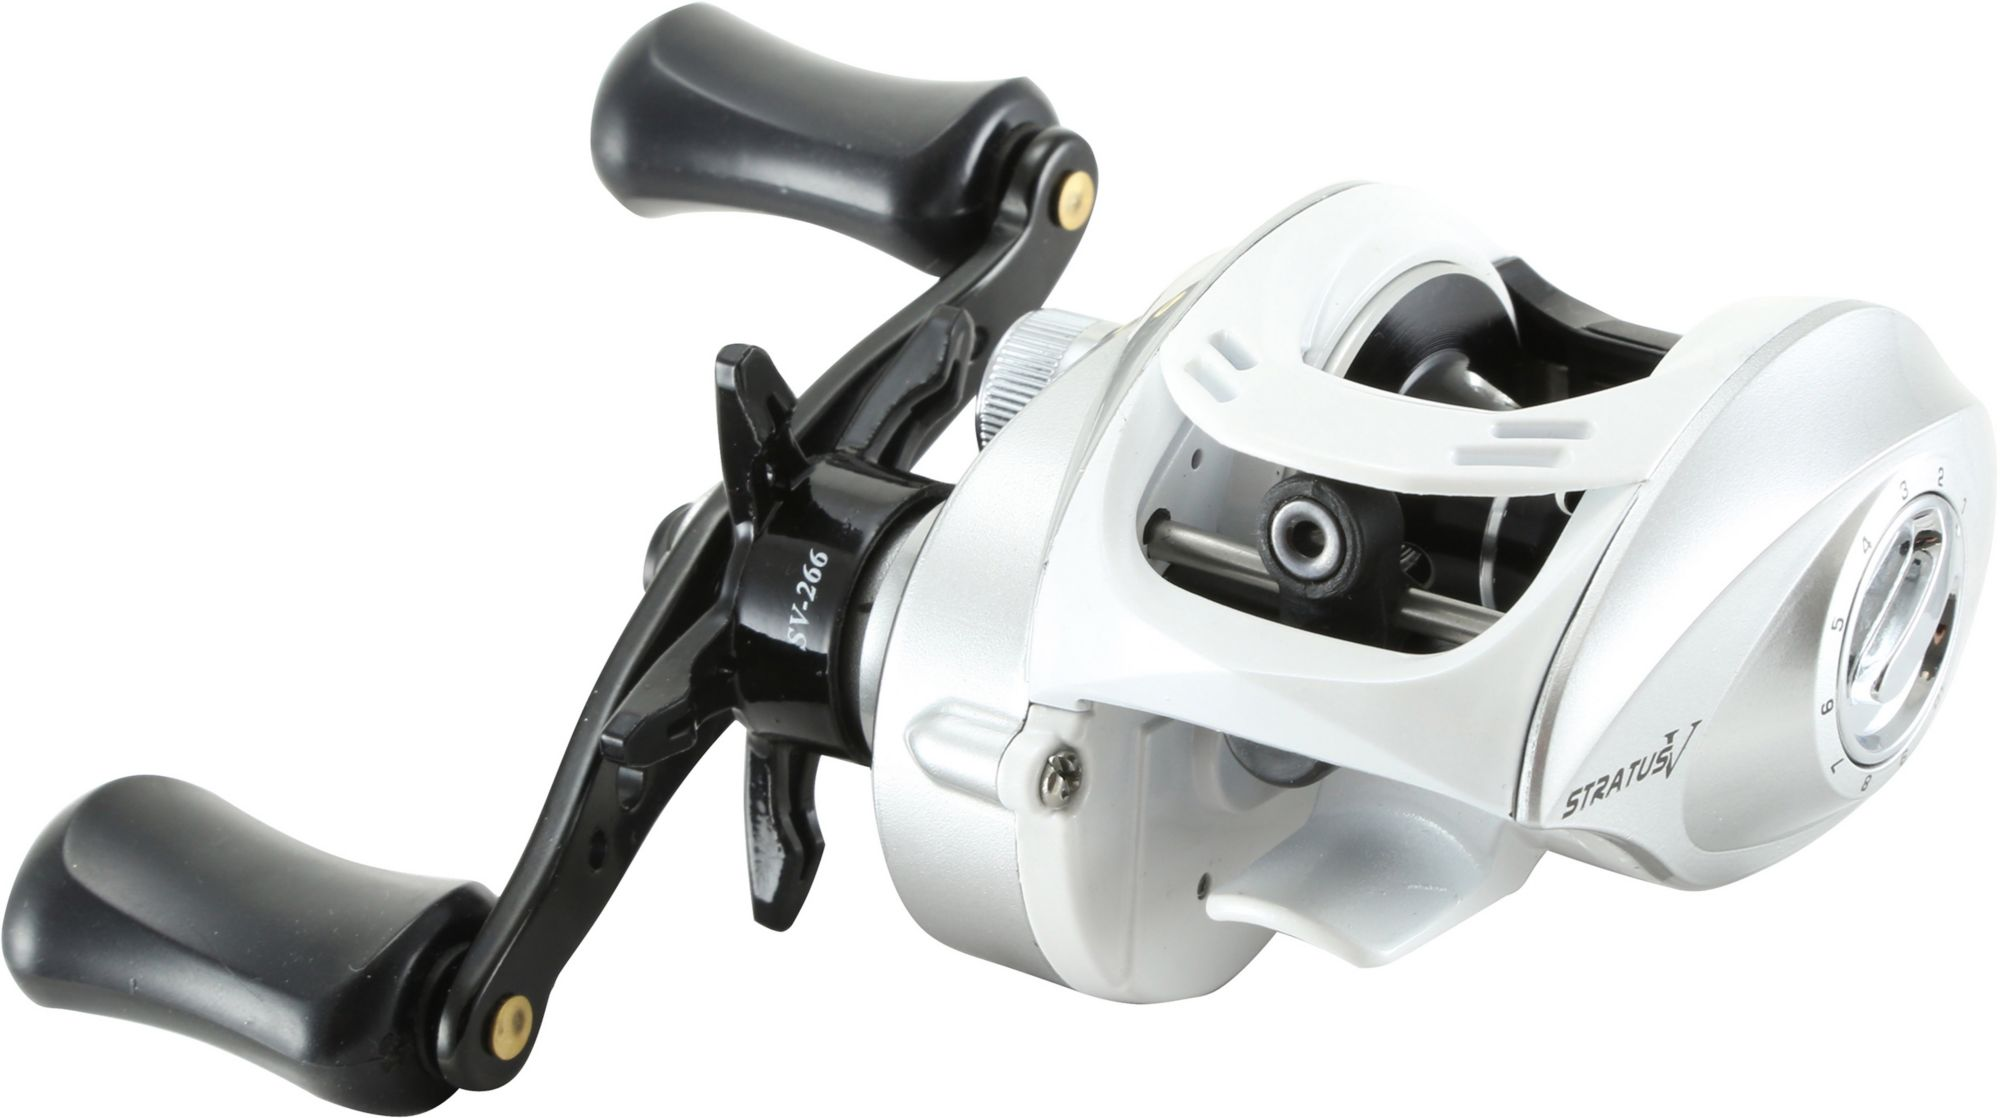 Okuma stratus v baitcasting reel field stream for Baitcasting fishing reels